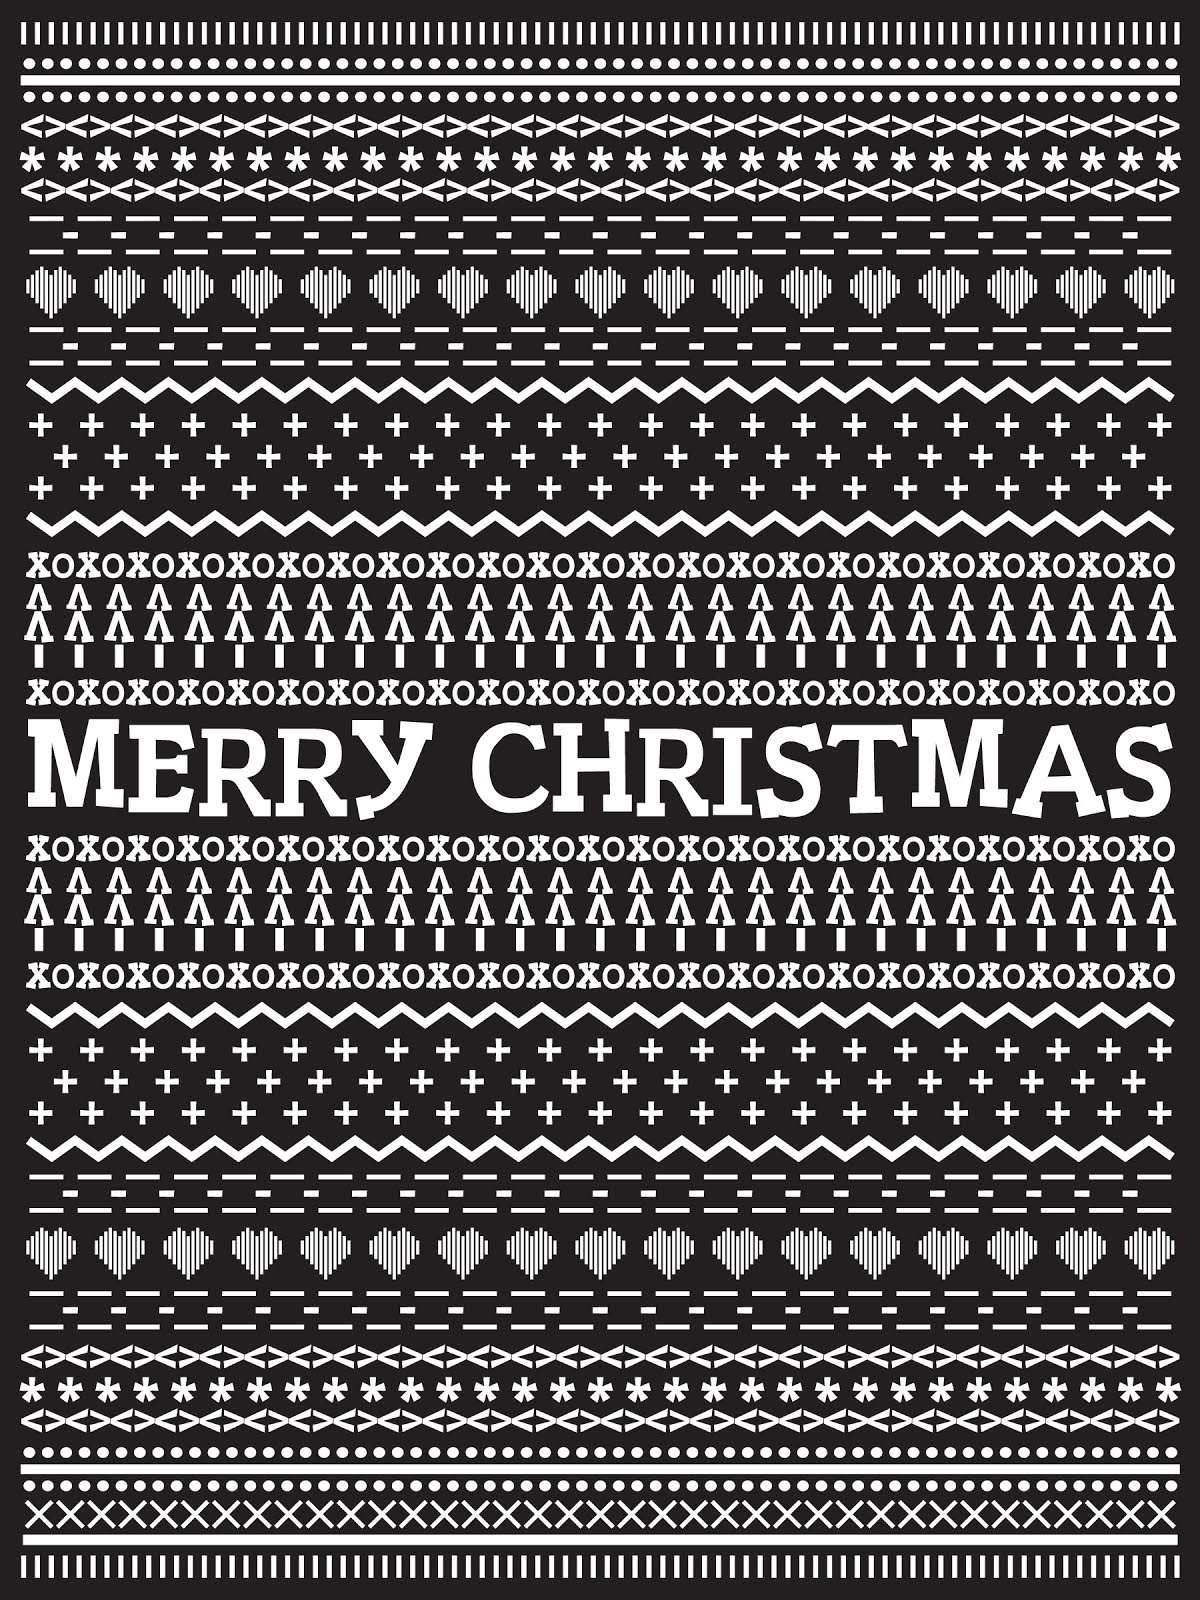 Fontaholic: FREEBIE FRIDAY: Ugly Sweater Typography Printable